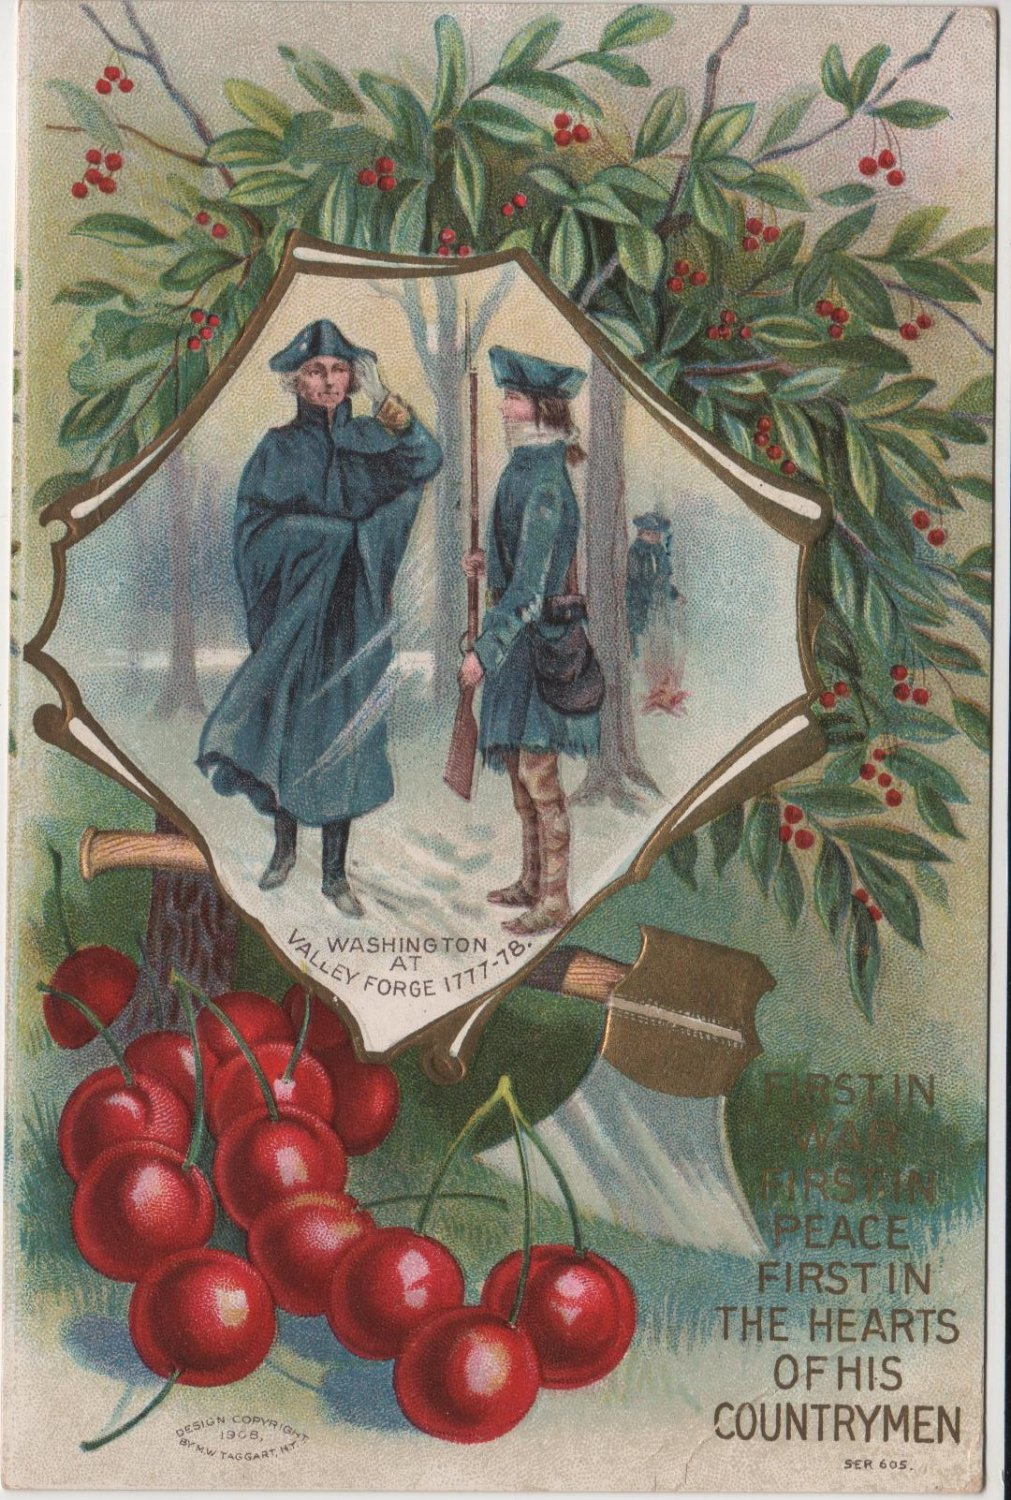 Geo. Washington Bday Card, Cherries & Valley Forge c.1908